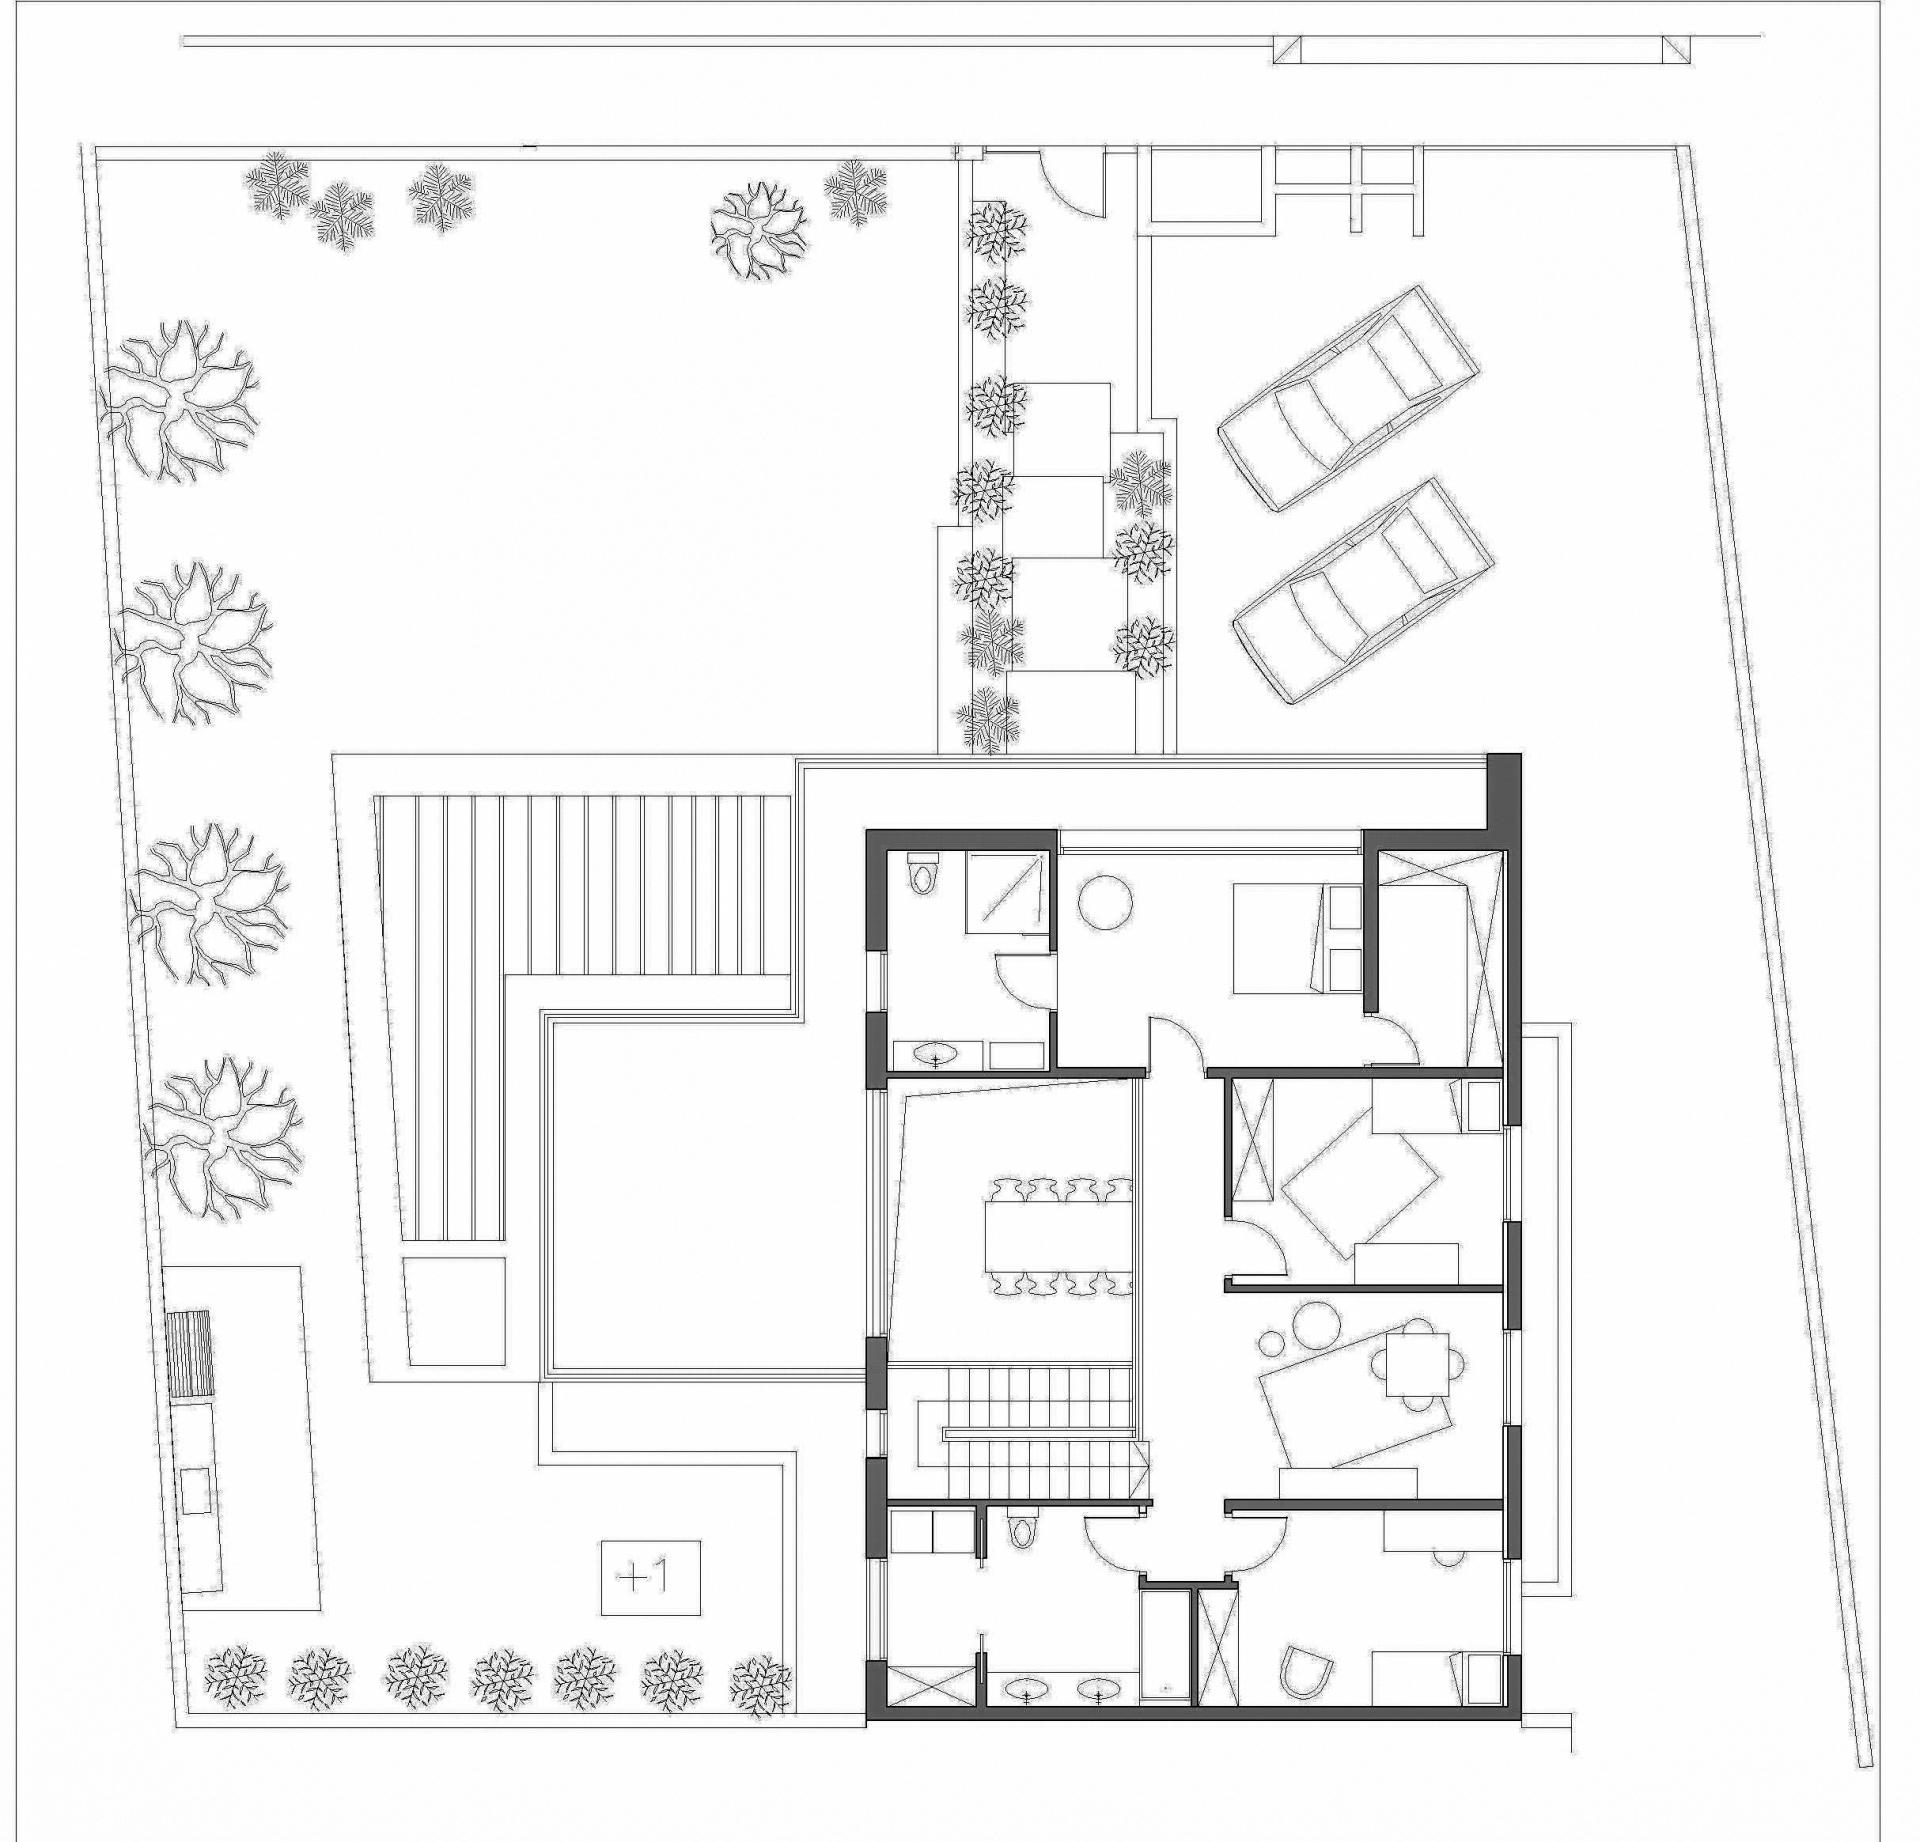 concrete ron shenkin first floor plan